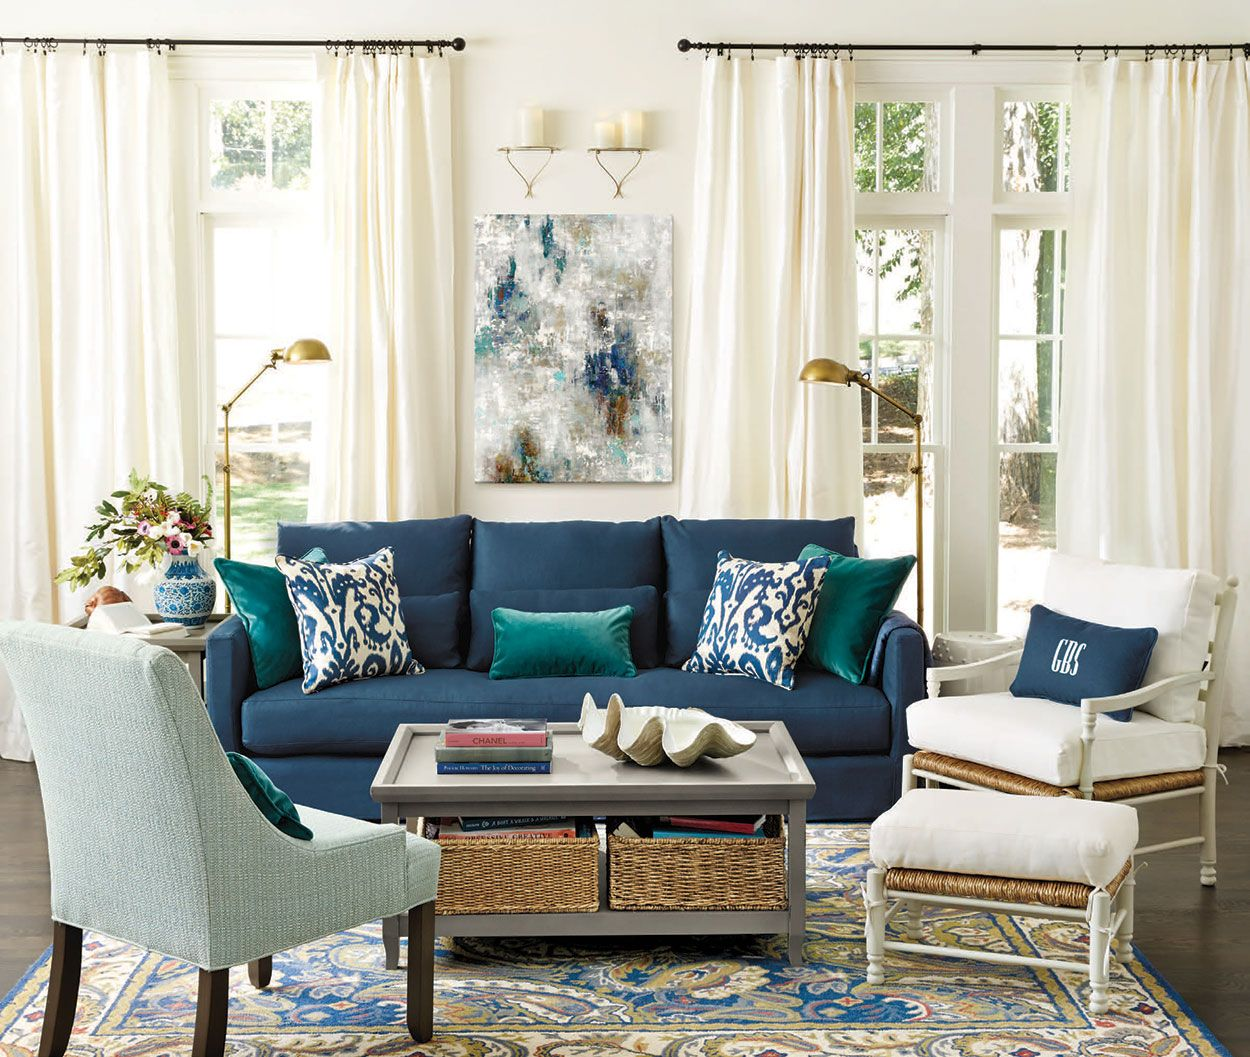 Living Rooms Ideas For Decorating Blue Couch Living Room Blue Sofas Living Room Blue Couch Living